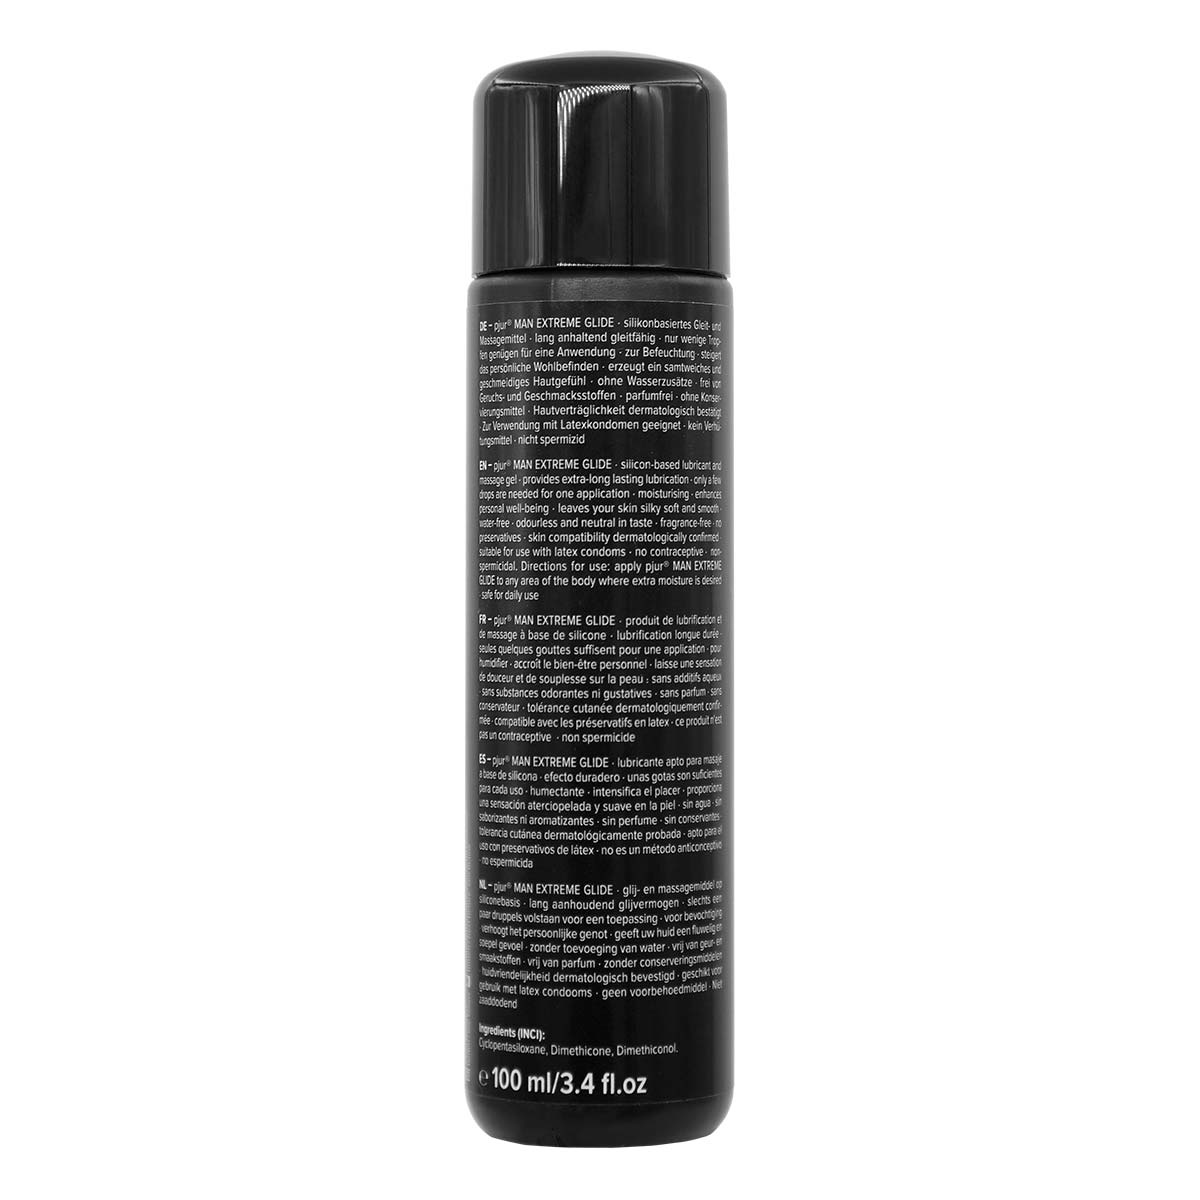 pjur MAN PREMIUM EXTREMEGLIDE 100ml Silicone-based Lubricant